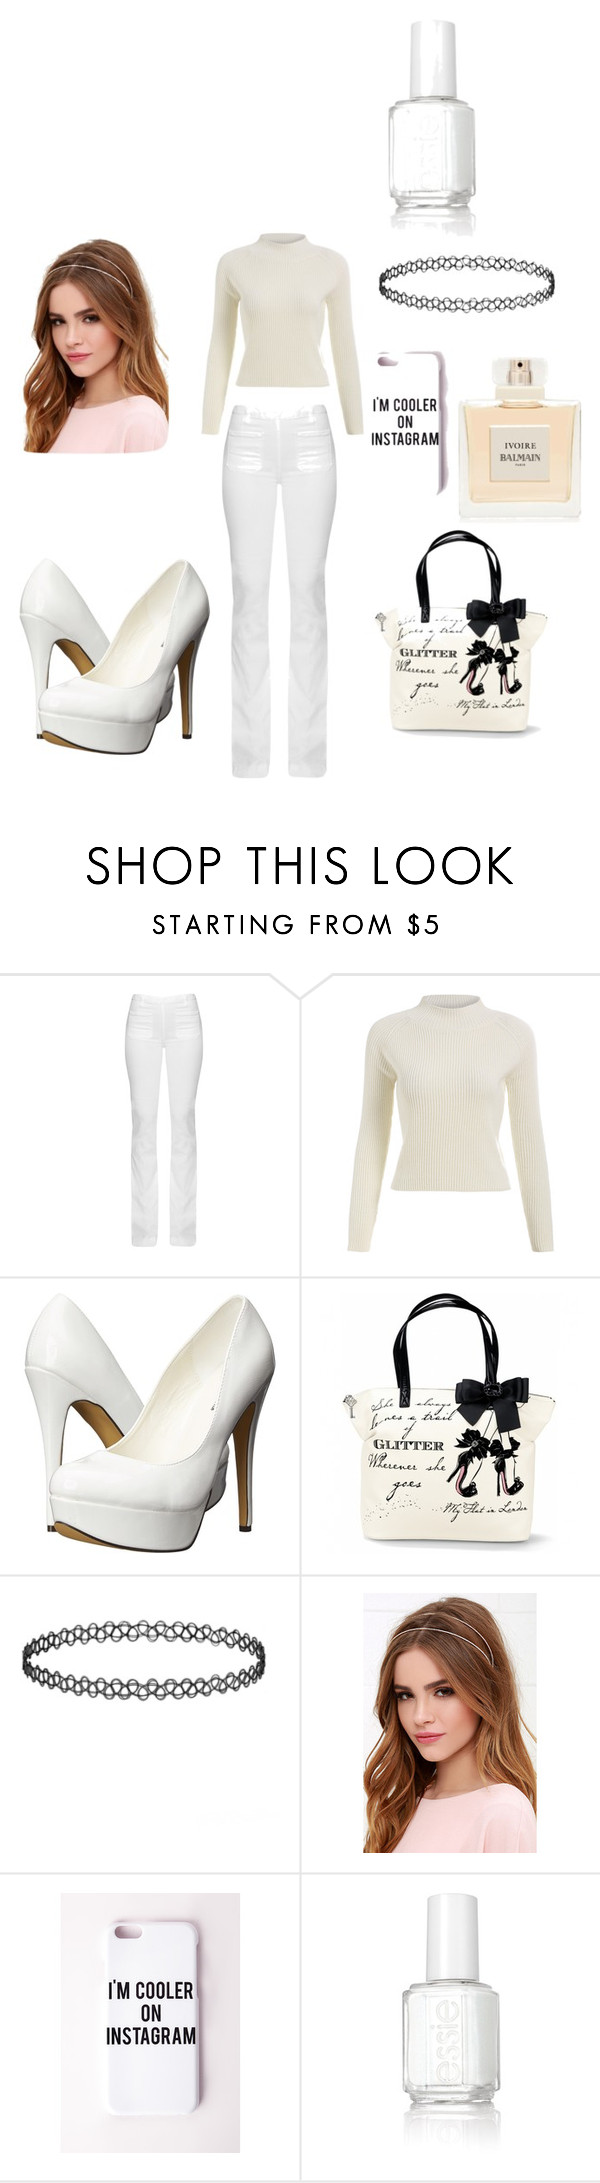 """""""Mostly White"""" by krisalyn117 ❤ liked on Polyvore featuring Frame Denim, Michael Antonio, Lulu*s, Missguided, Balmain, Essie, women's clothing, women, female and woman"""